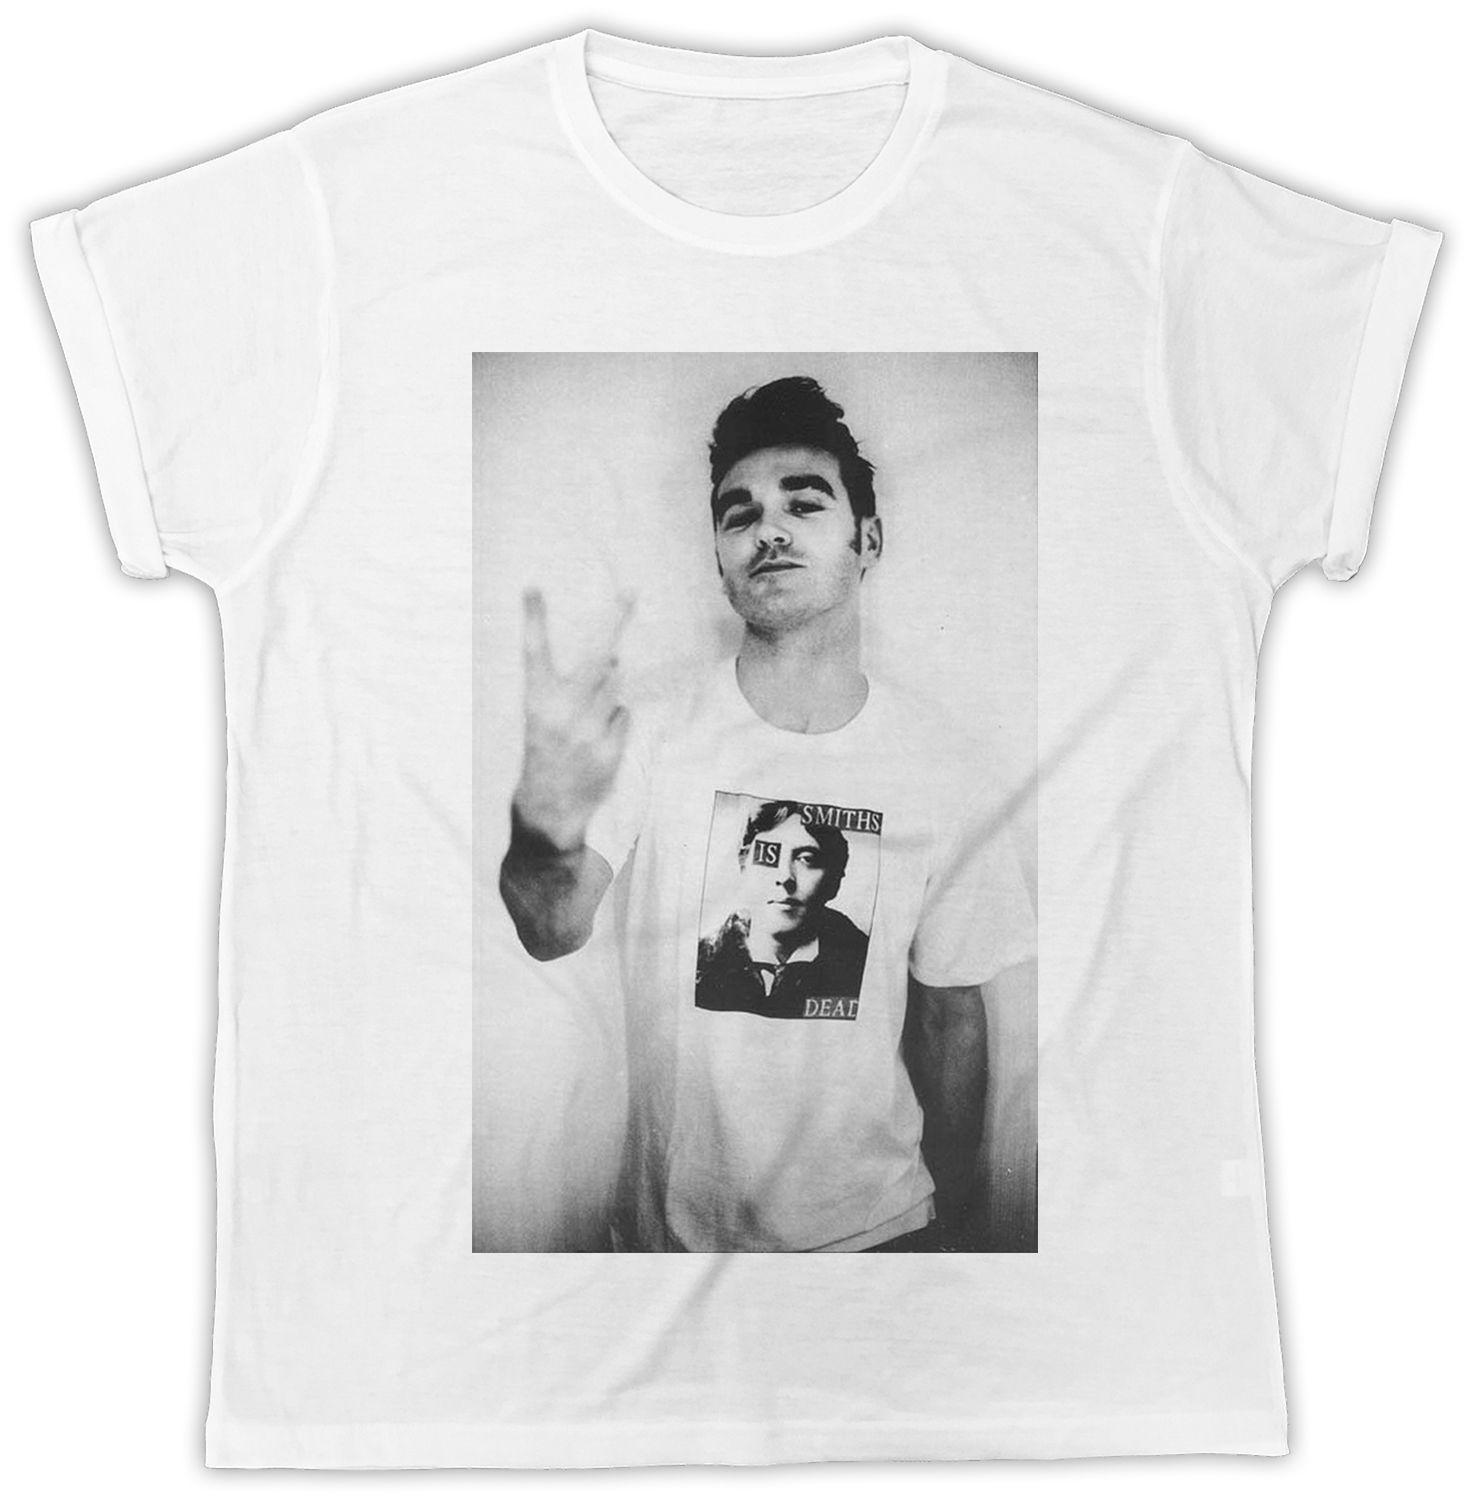 f5ee1358d THE SMITHS IS DEAD AS WORN BY MORRISSEY IDEAL GIFT UNISEX TSHIRT Summer O  Neck Tee, Cheap Tee Awesome T Shirt Design Shirt And Tshirt From Yp004, ...